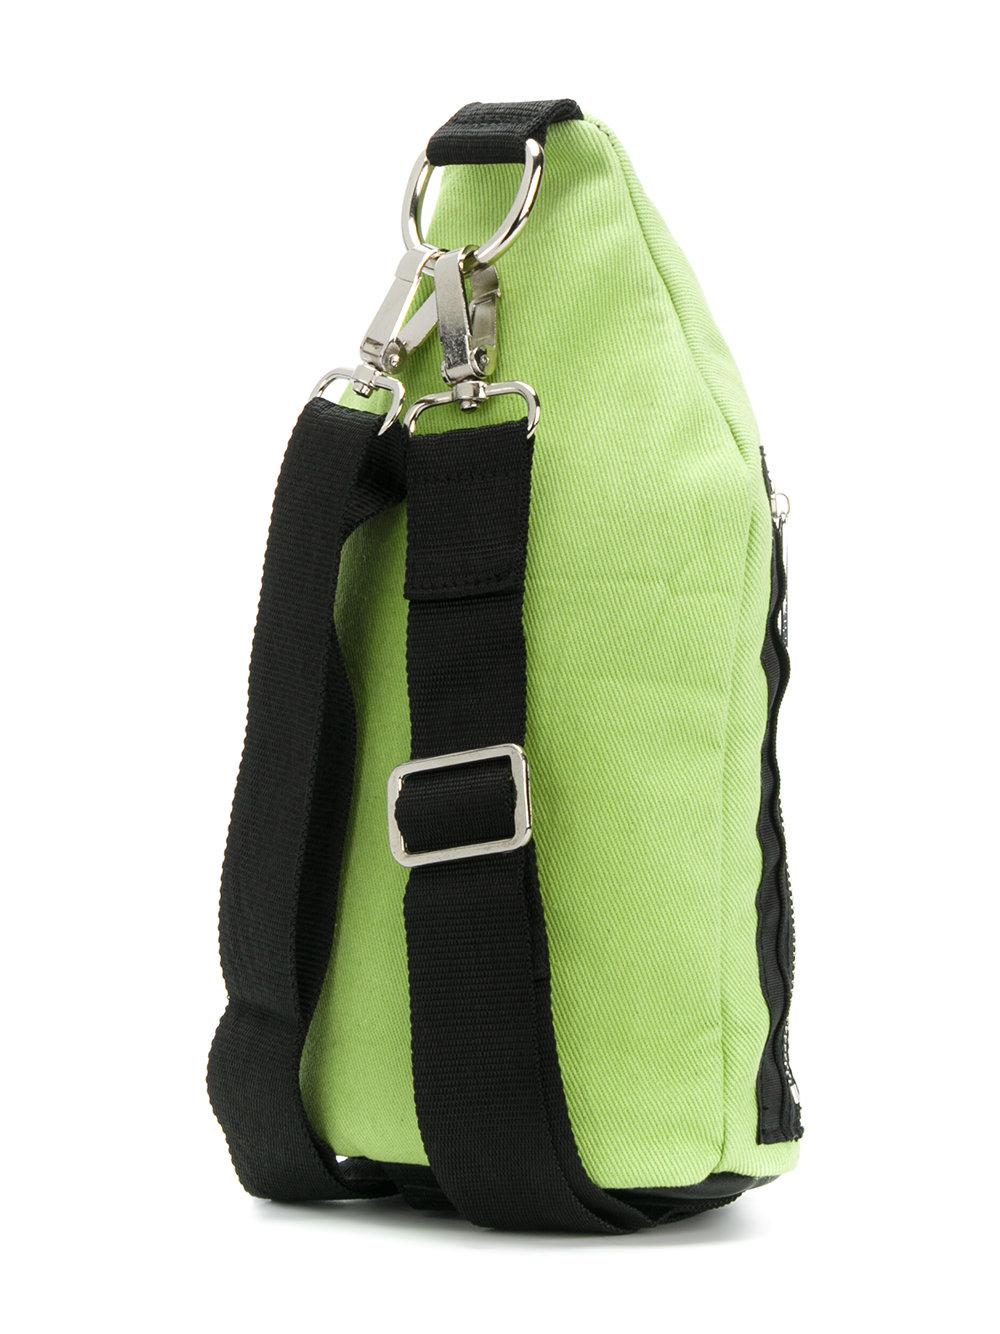 Blood Brother Cotton Rave Culture Crossbody Bag in Green for Men